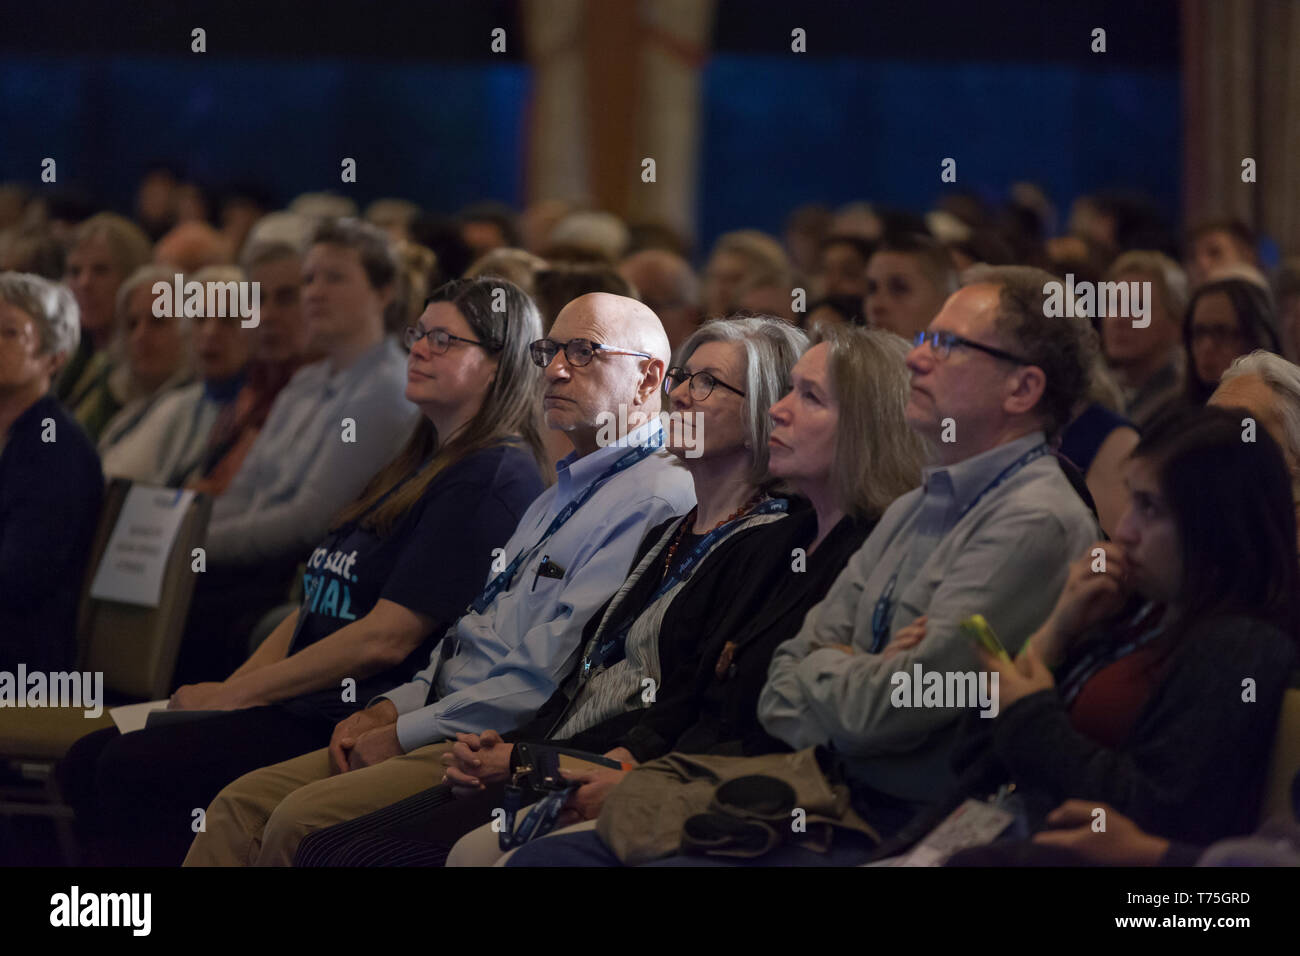 Seattle, Washington: Supporters gathered to see Janet Napolitano at the Crosscut Festival's keynote. Atlas Obscura's David Plotz moderated the discuss - Stock Image